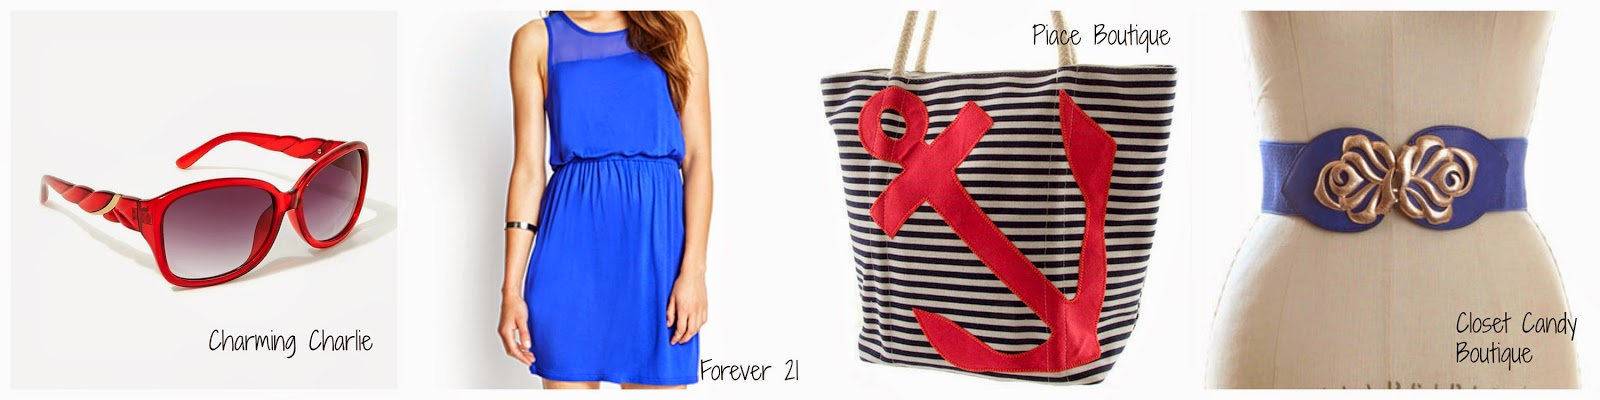 July Trends - Red Sunglasses, Blue Dresses and Belts, and Nautical Totes